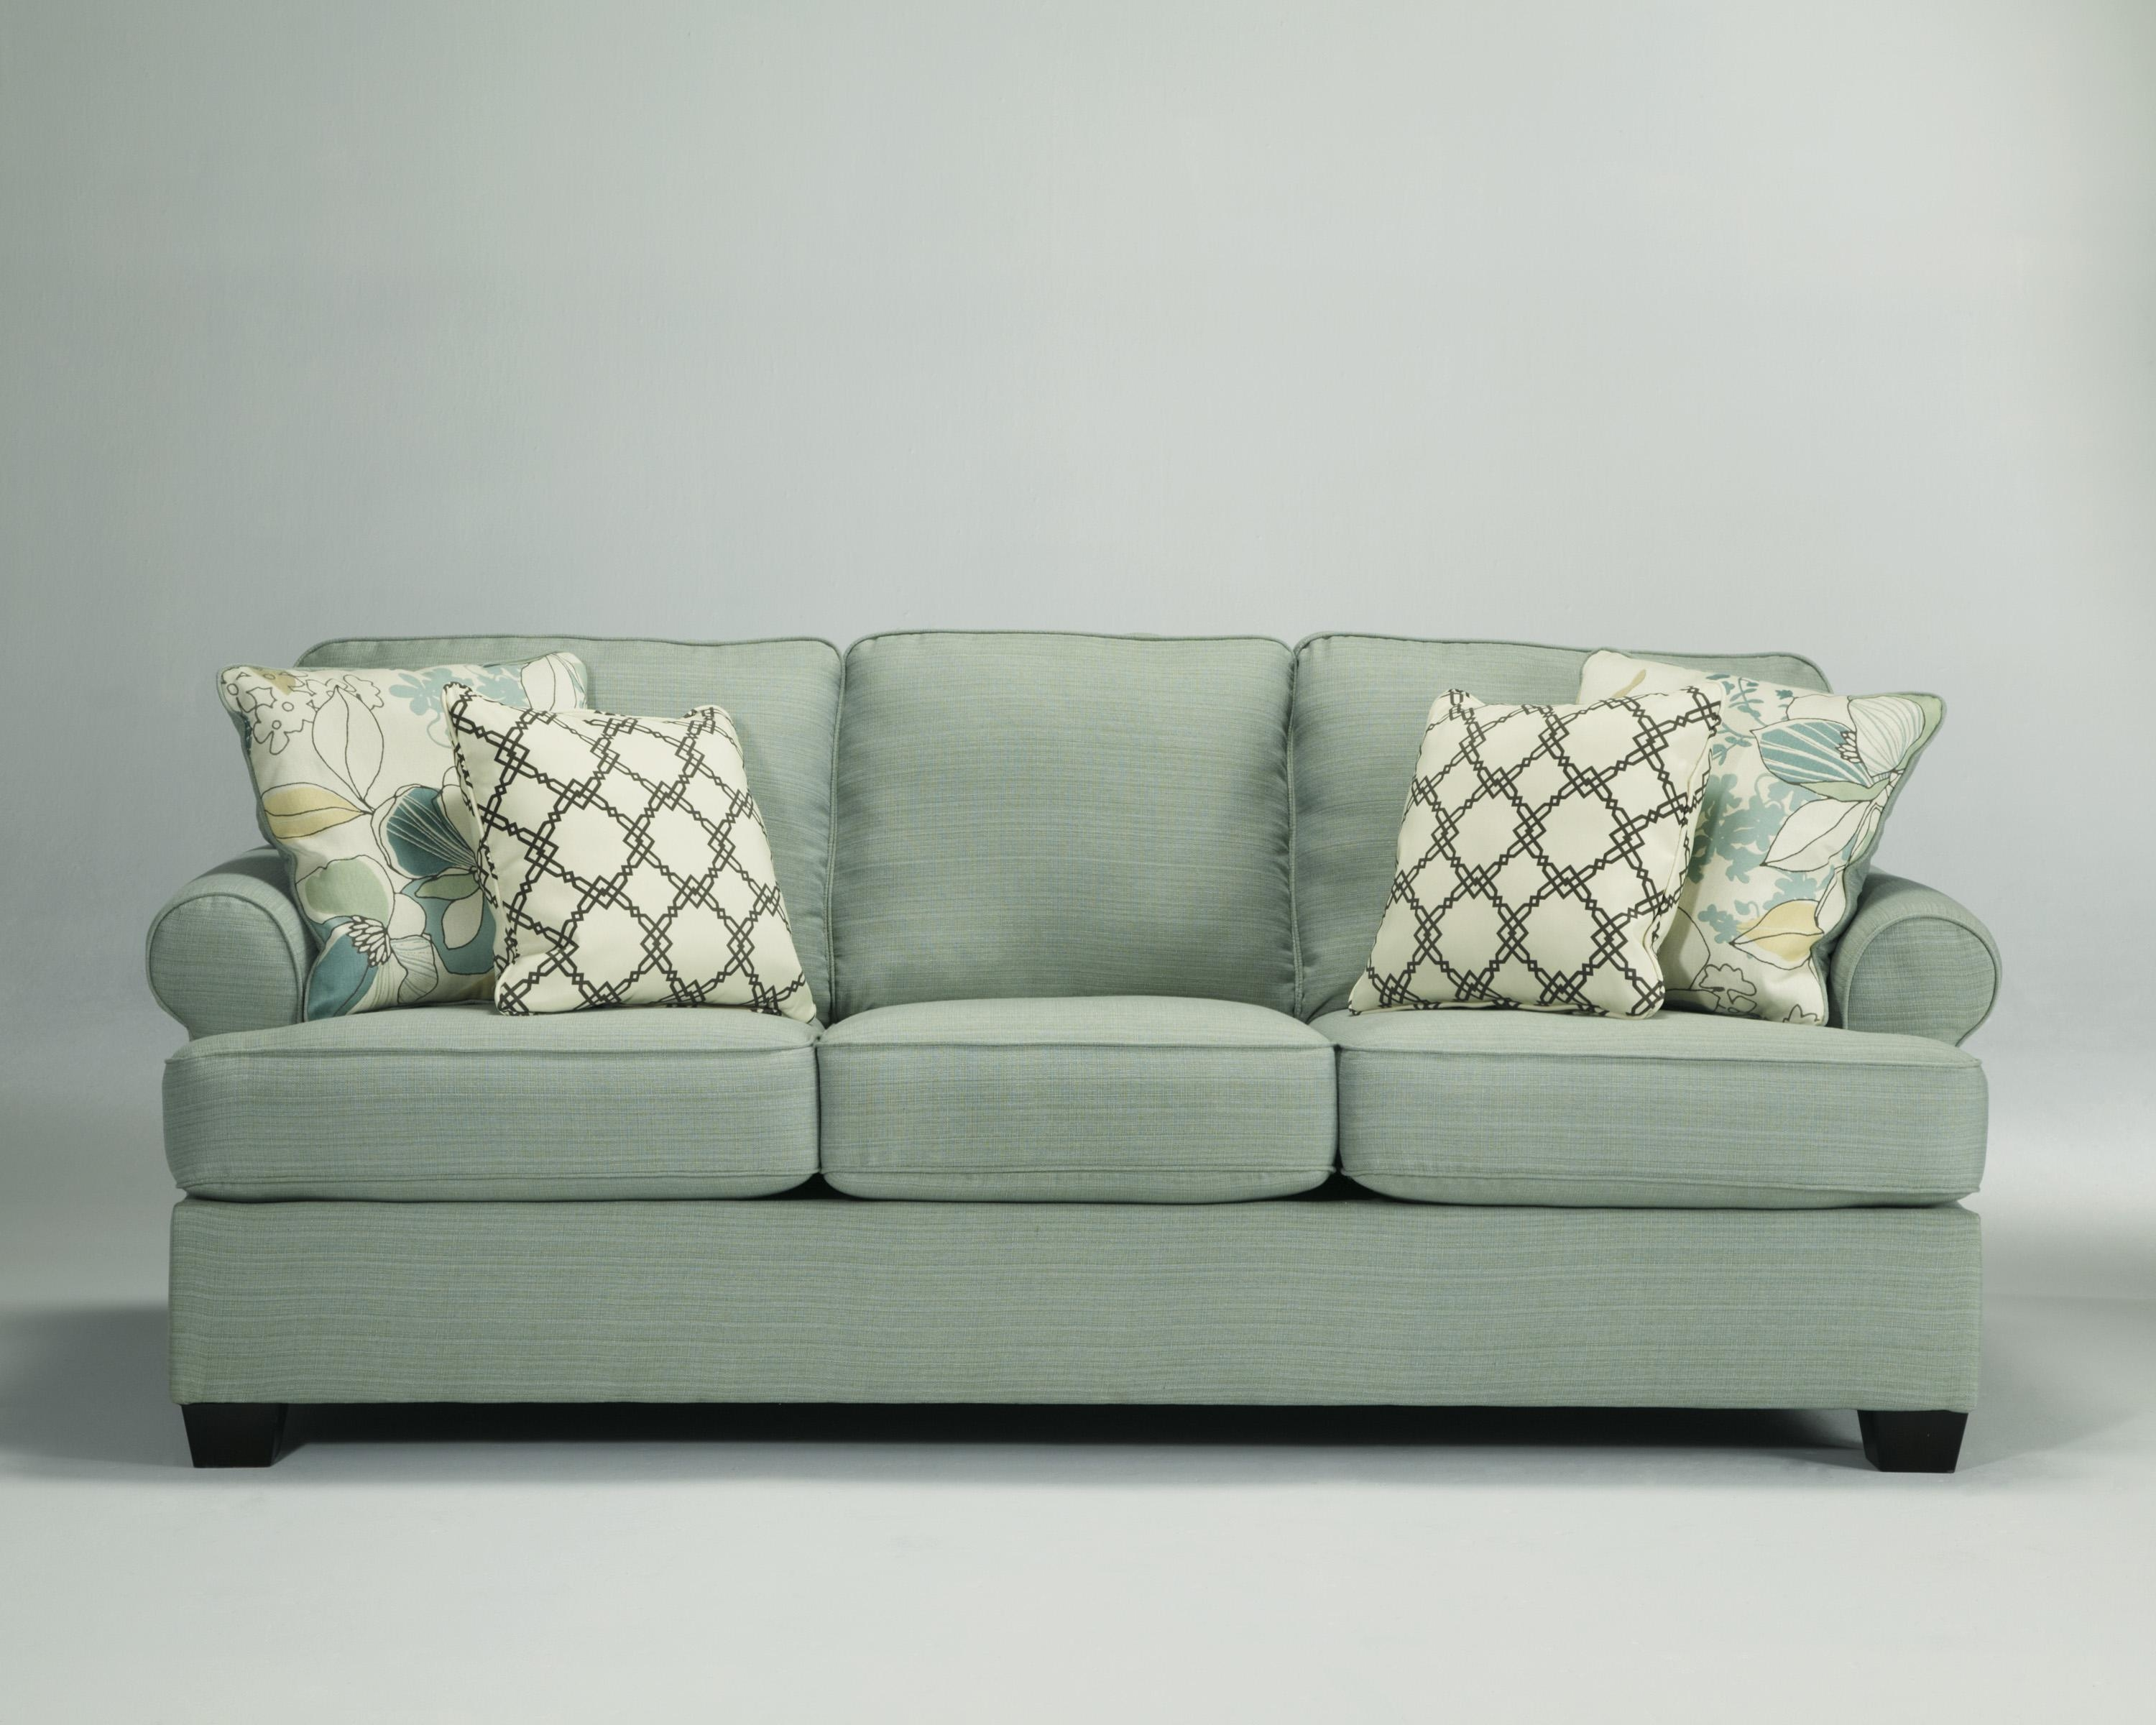 Sofas Center : Fascinating Ashley Sleeper Sofa Image Ideas With Regard To Chenille Sleeper Sofas (Image 19 of 20)